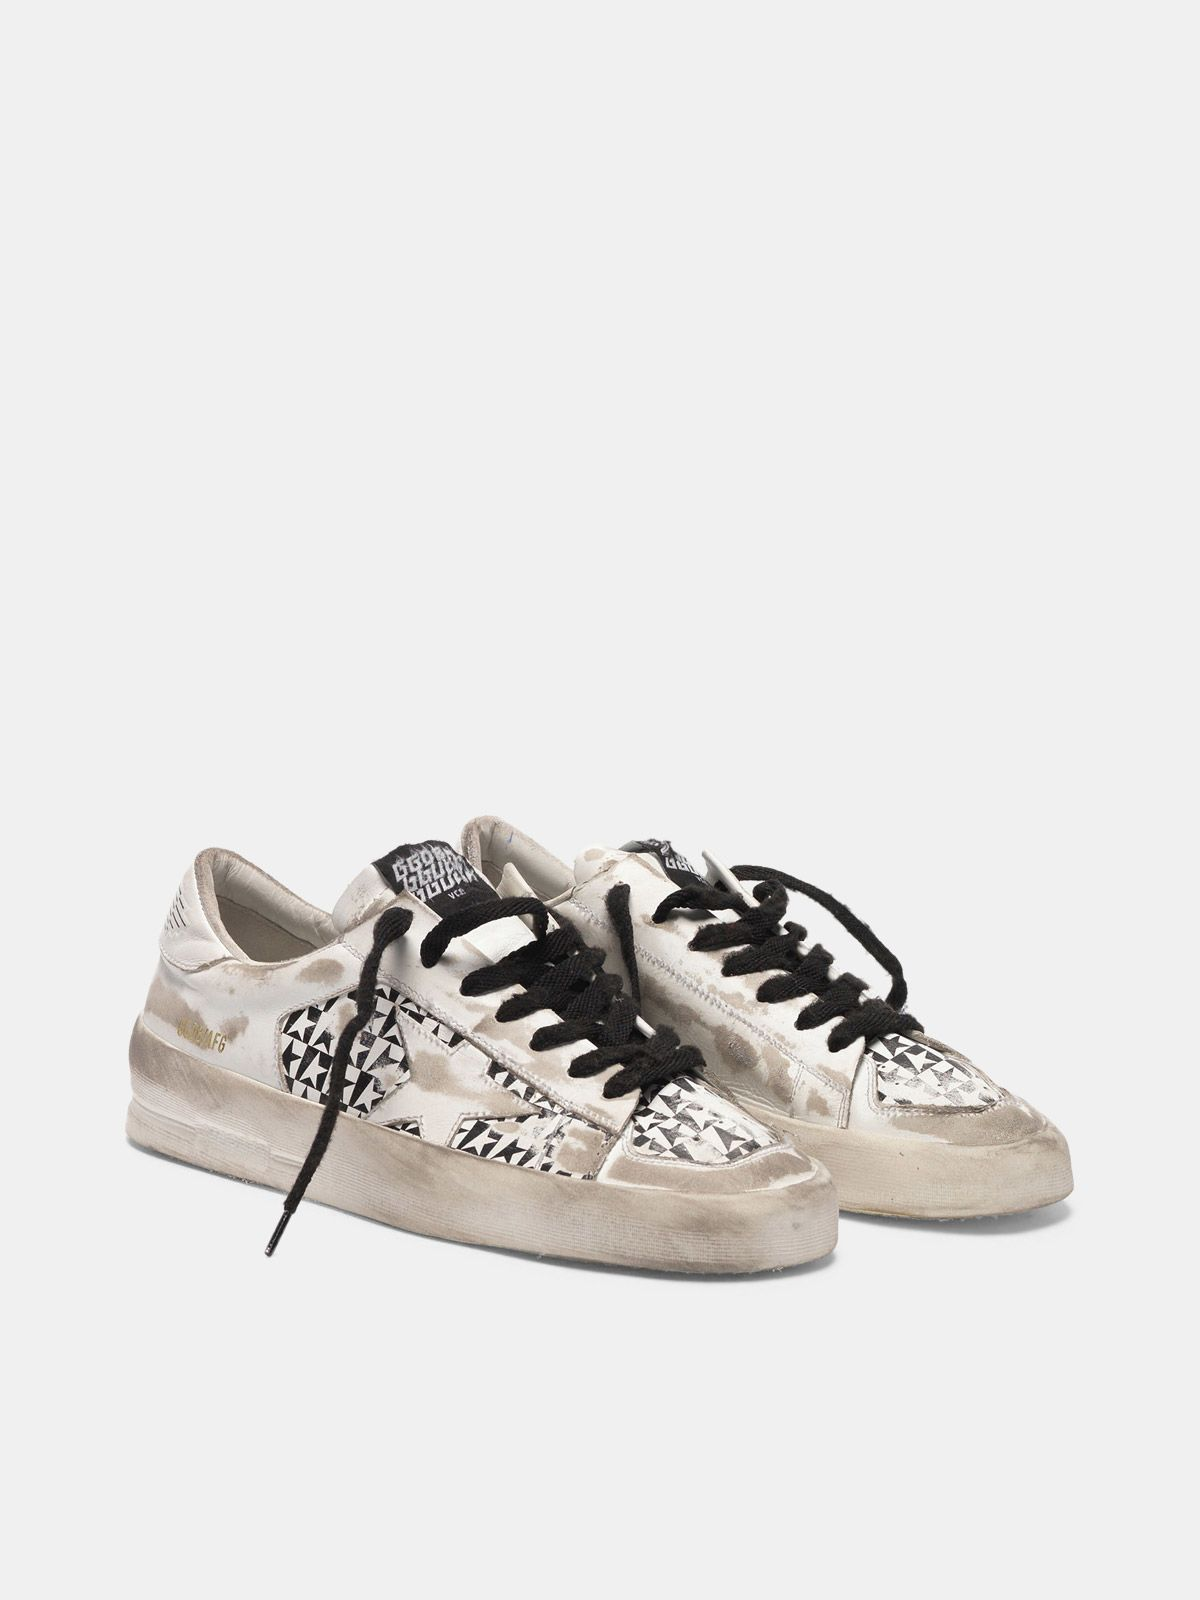 Golden Goose - Sneakers Stardan LTD con stampa stelle a scacchi in